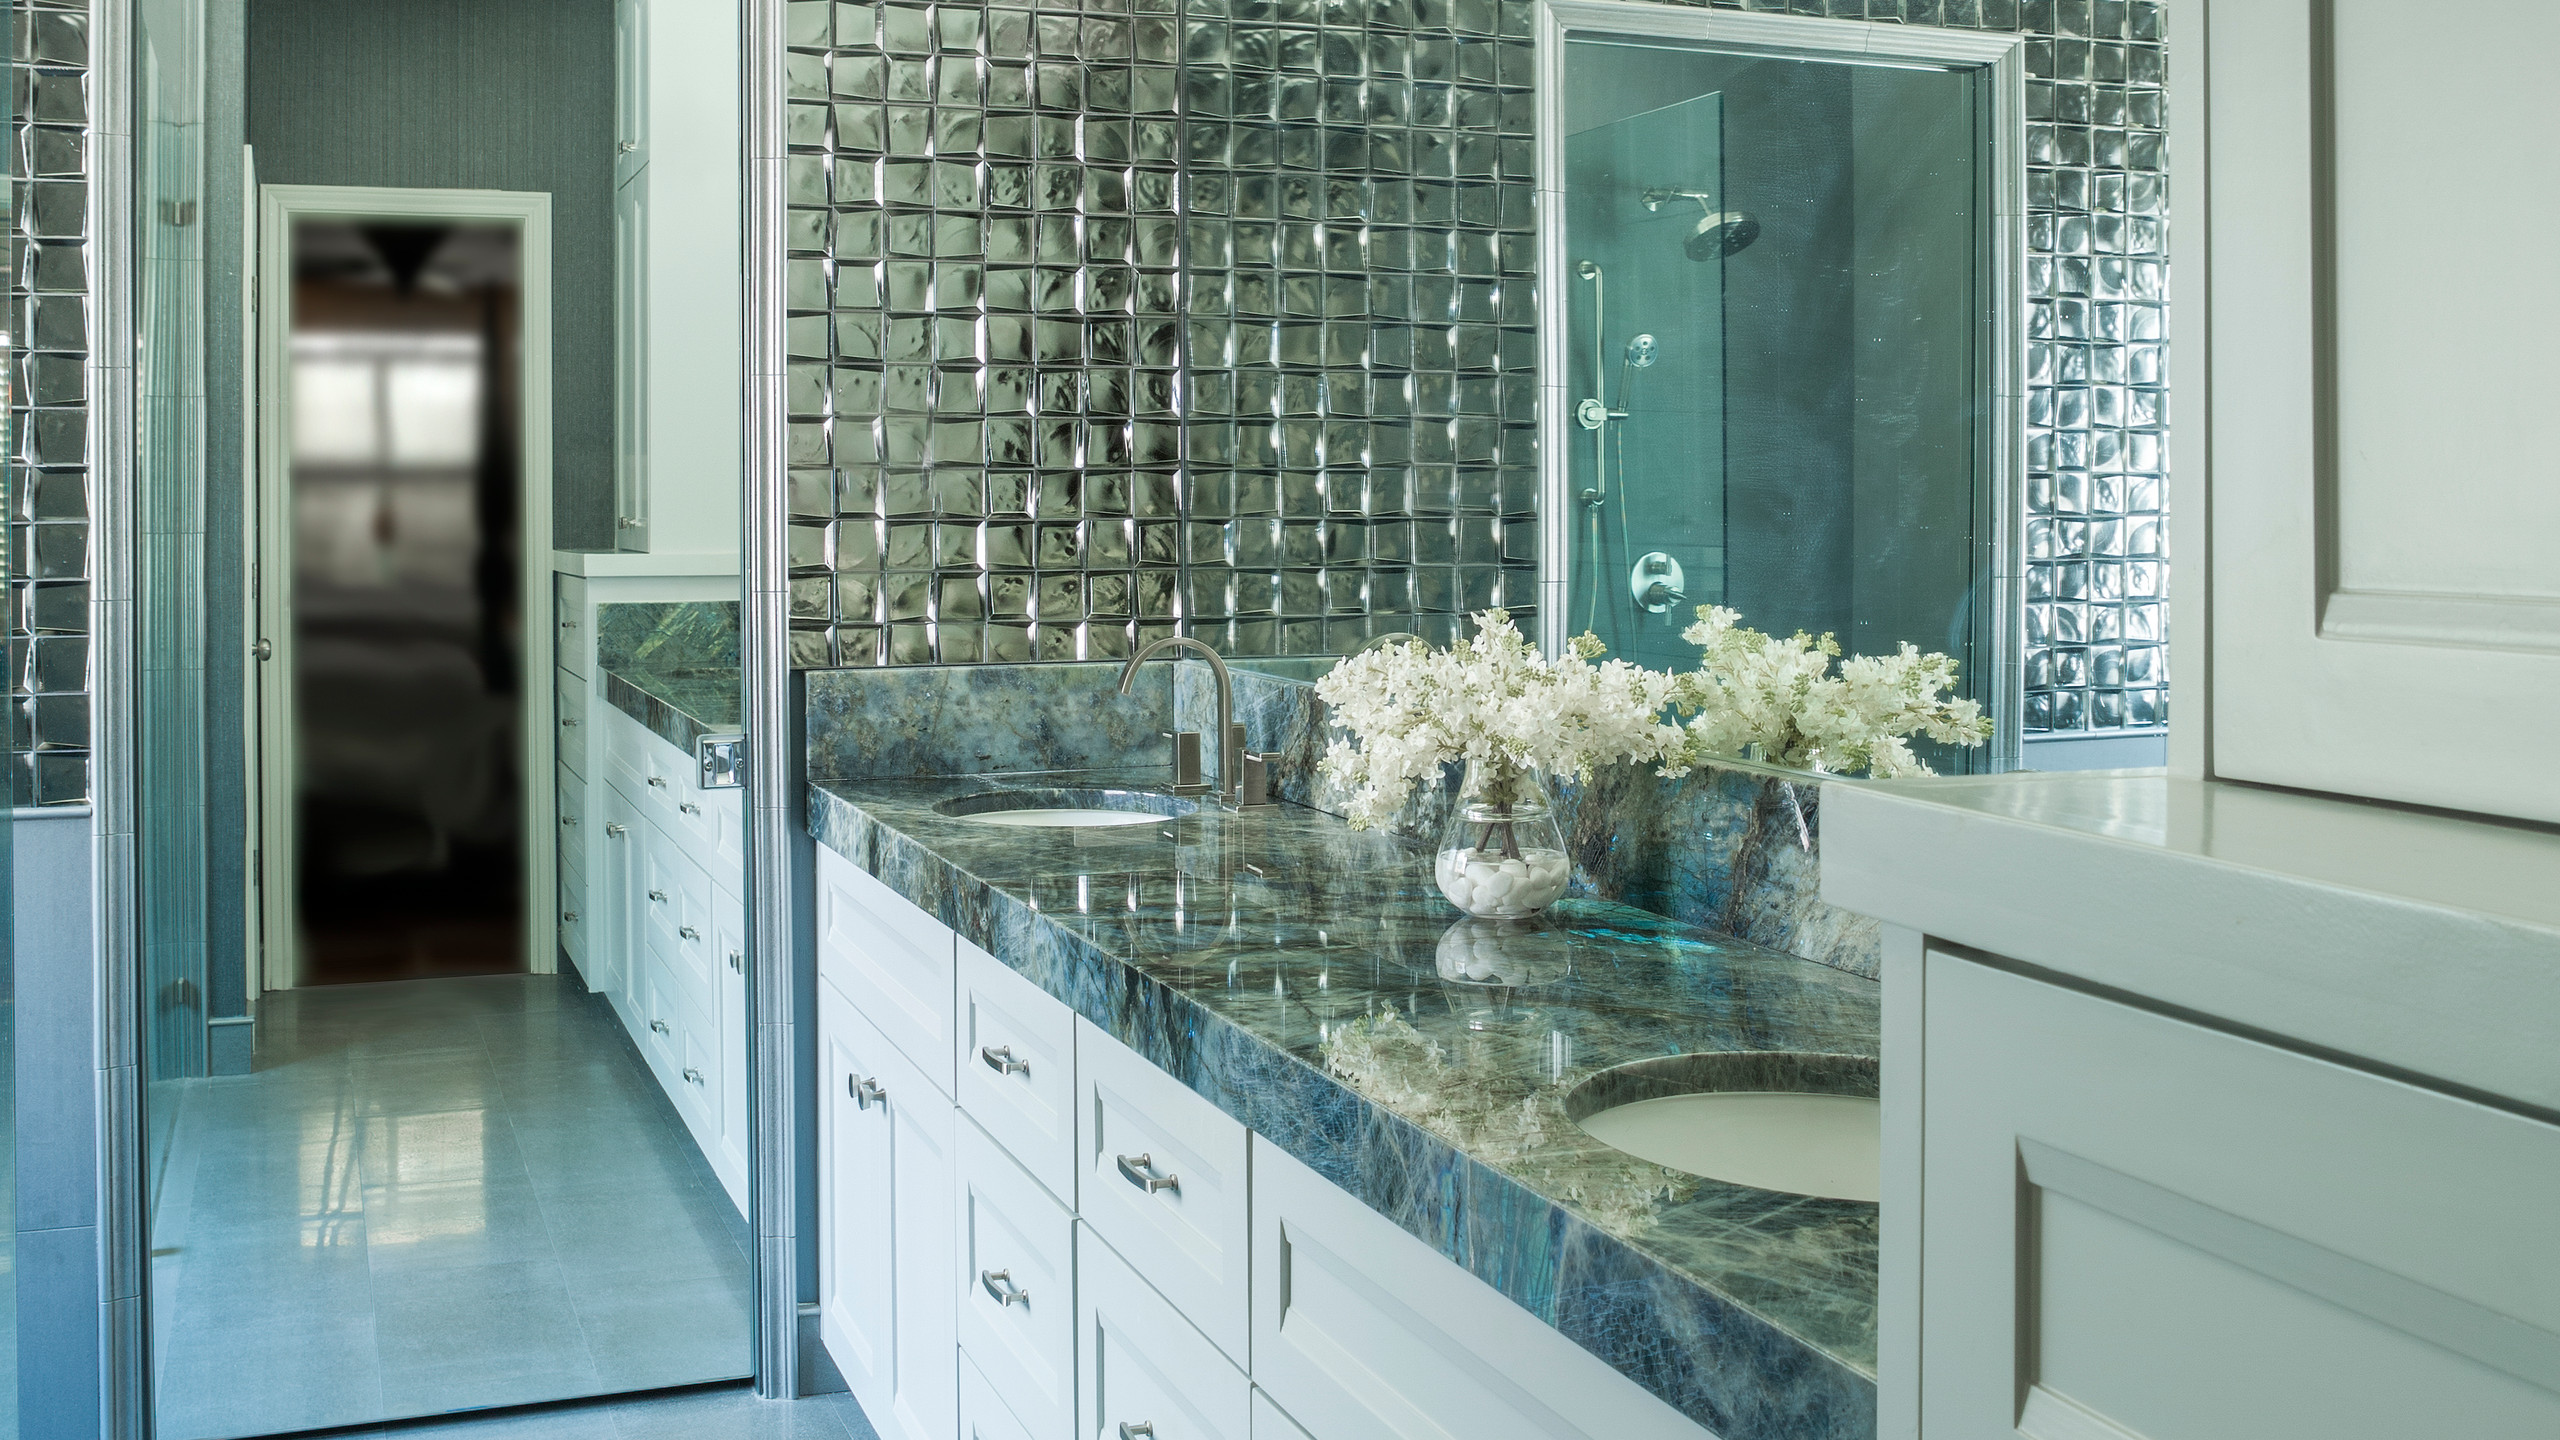 glam master bathroom with mirrored tiled walls and granite countertops